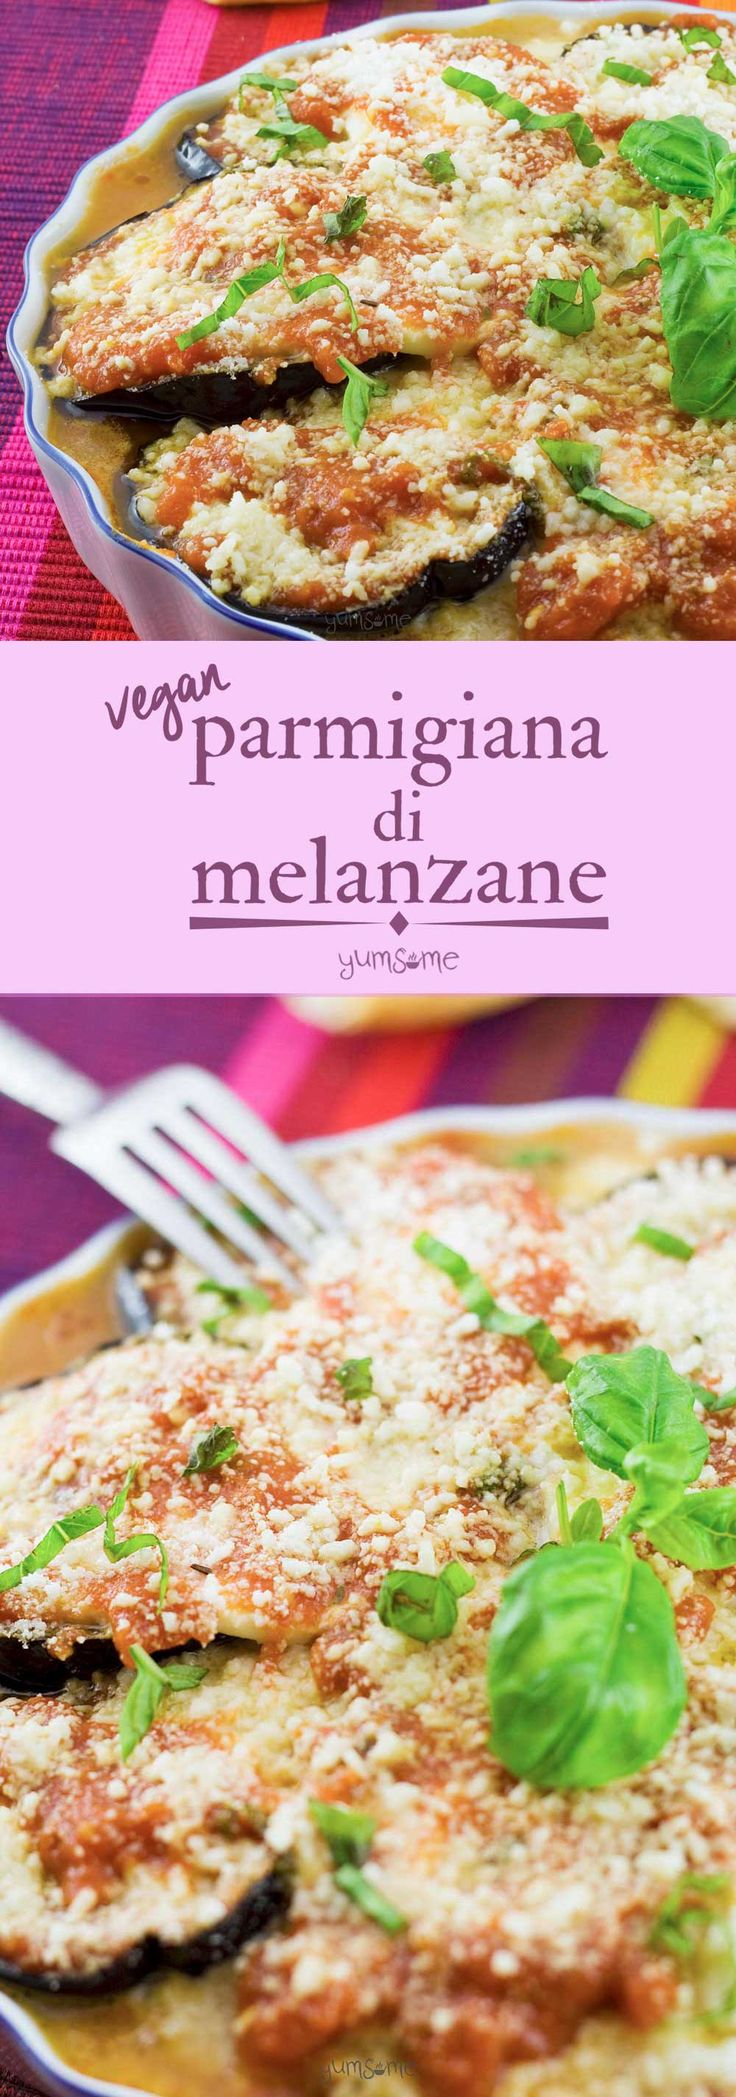 My vegan parmigiana di melanzane is a delicious oven-baked dish with aubergine, home made tomato and herb sauce, and vegan mozzarella and parmesan cheeses. | yumsome.com via @yums0me